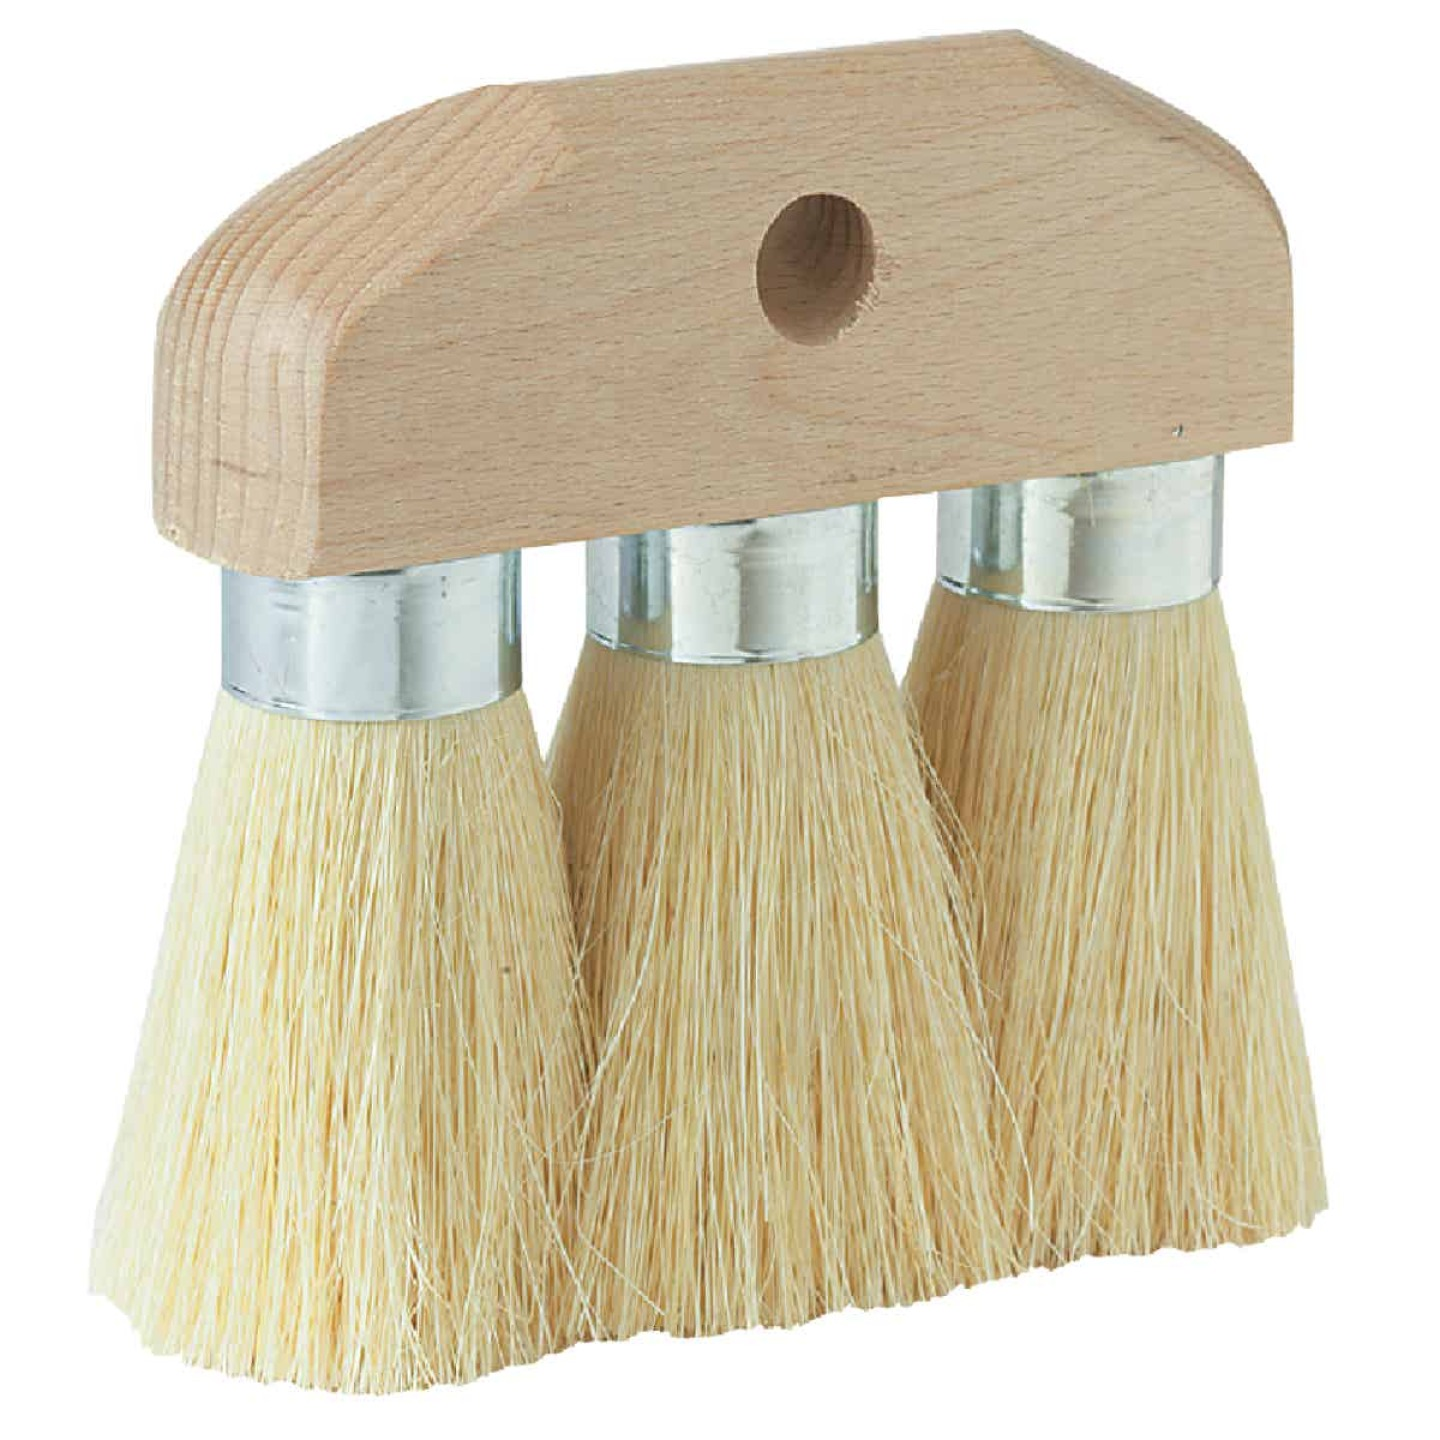 DQB 3-1/2 In. x 3-Knot Tampico Roof Brush Image 1